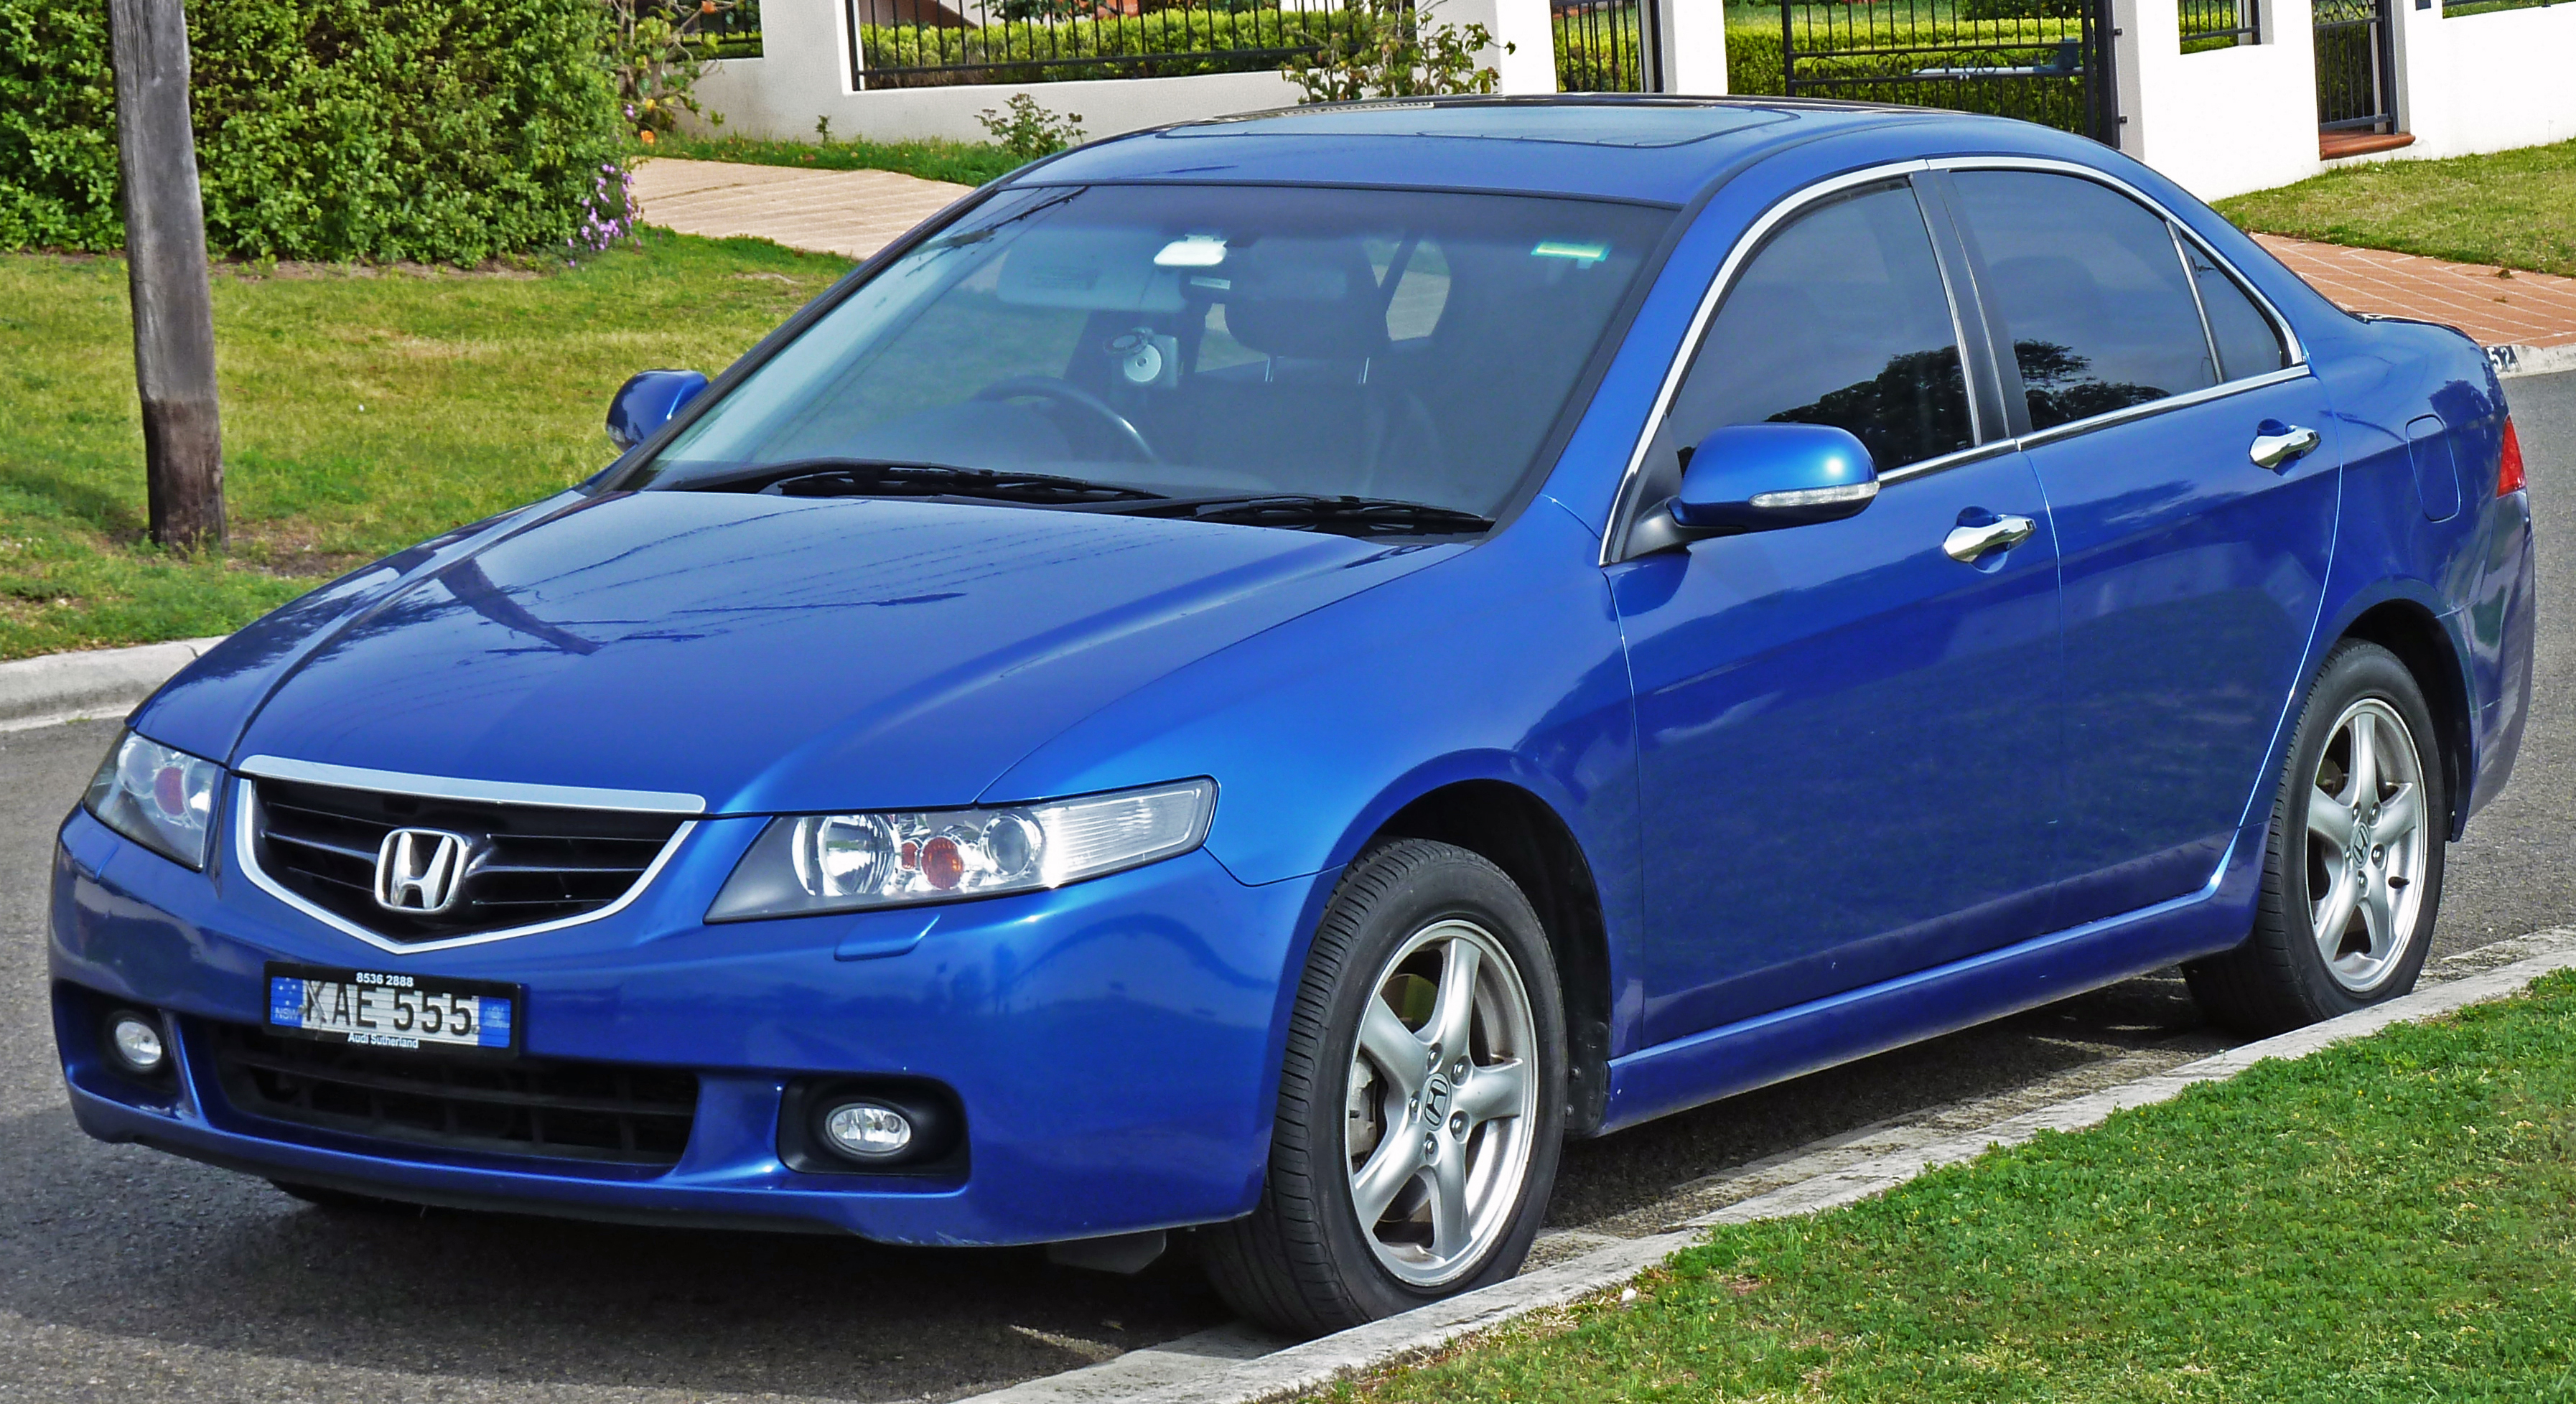 honda accord 2.4 vtec - 2009 г.в.